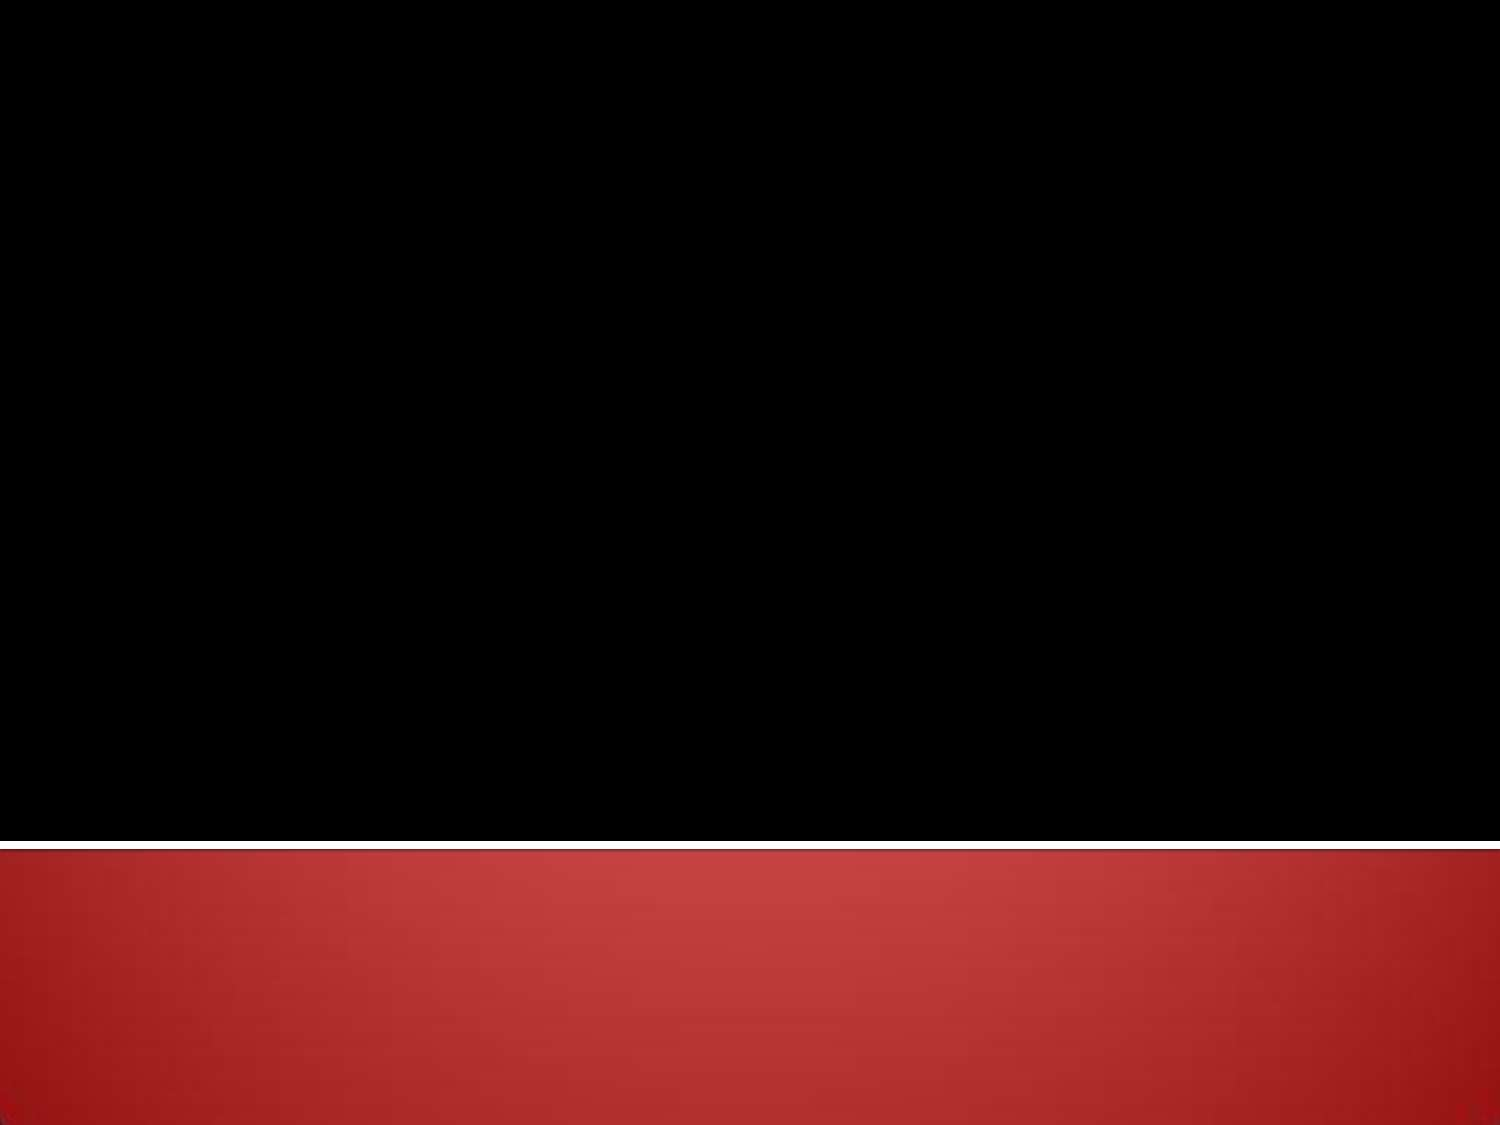 Red Black and White Background Wallpaper for PowerPoint Presentations 1500x1125